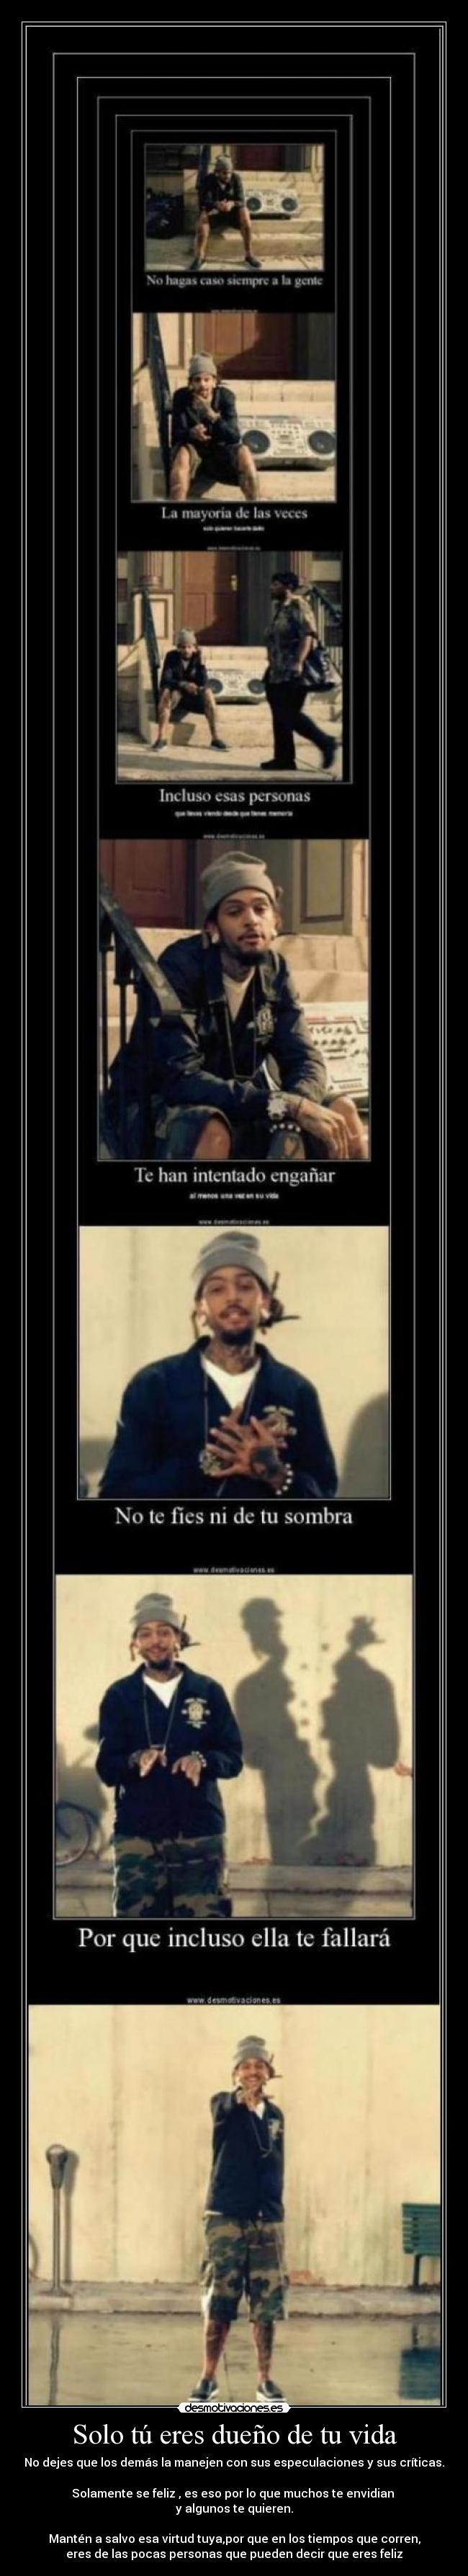 carteles vida sorry for party rocking travie mccoy imaxi sujetador tharatopus yz3 desmotivaciones